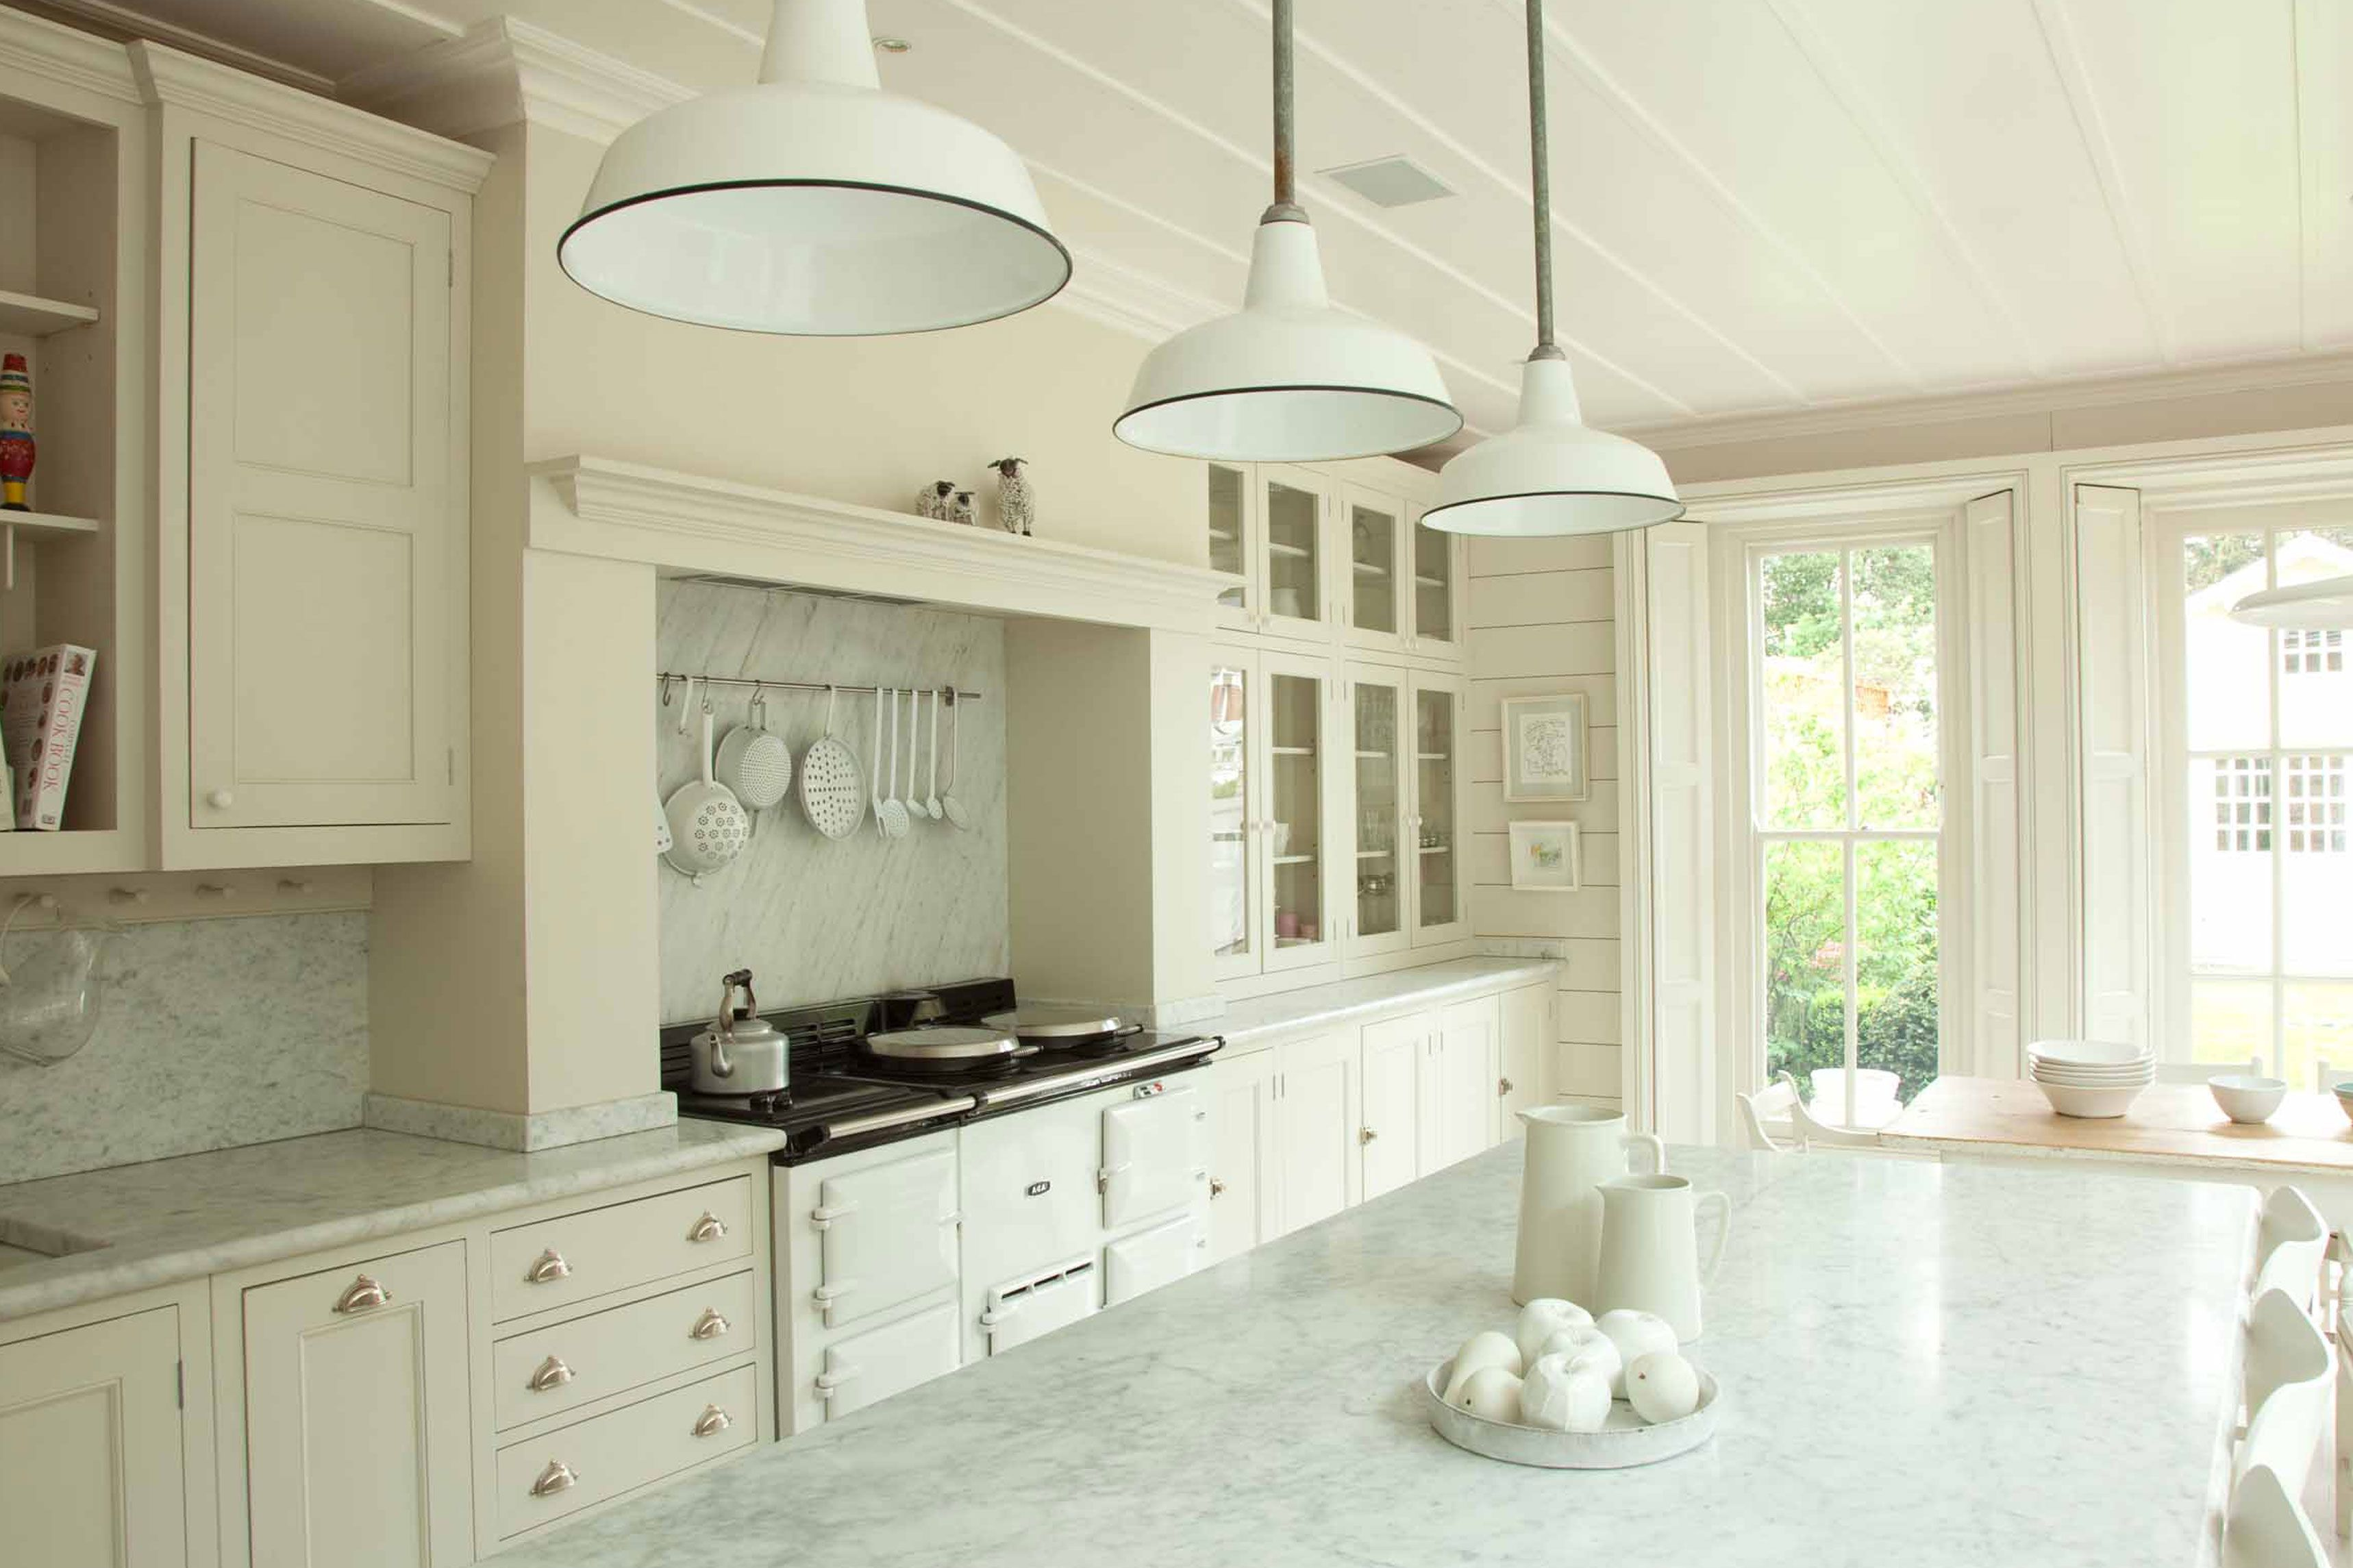 marble counter and backsplash, hooks under cabinets, some open, some ...